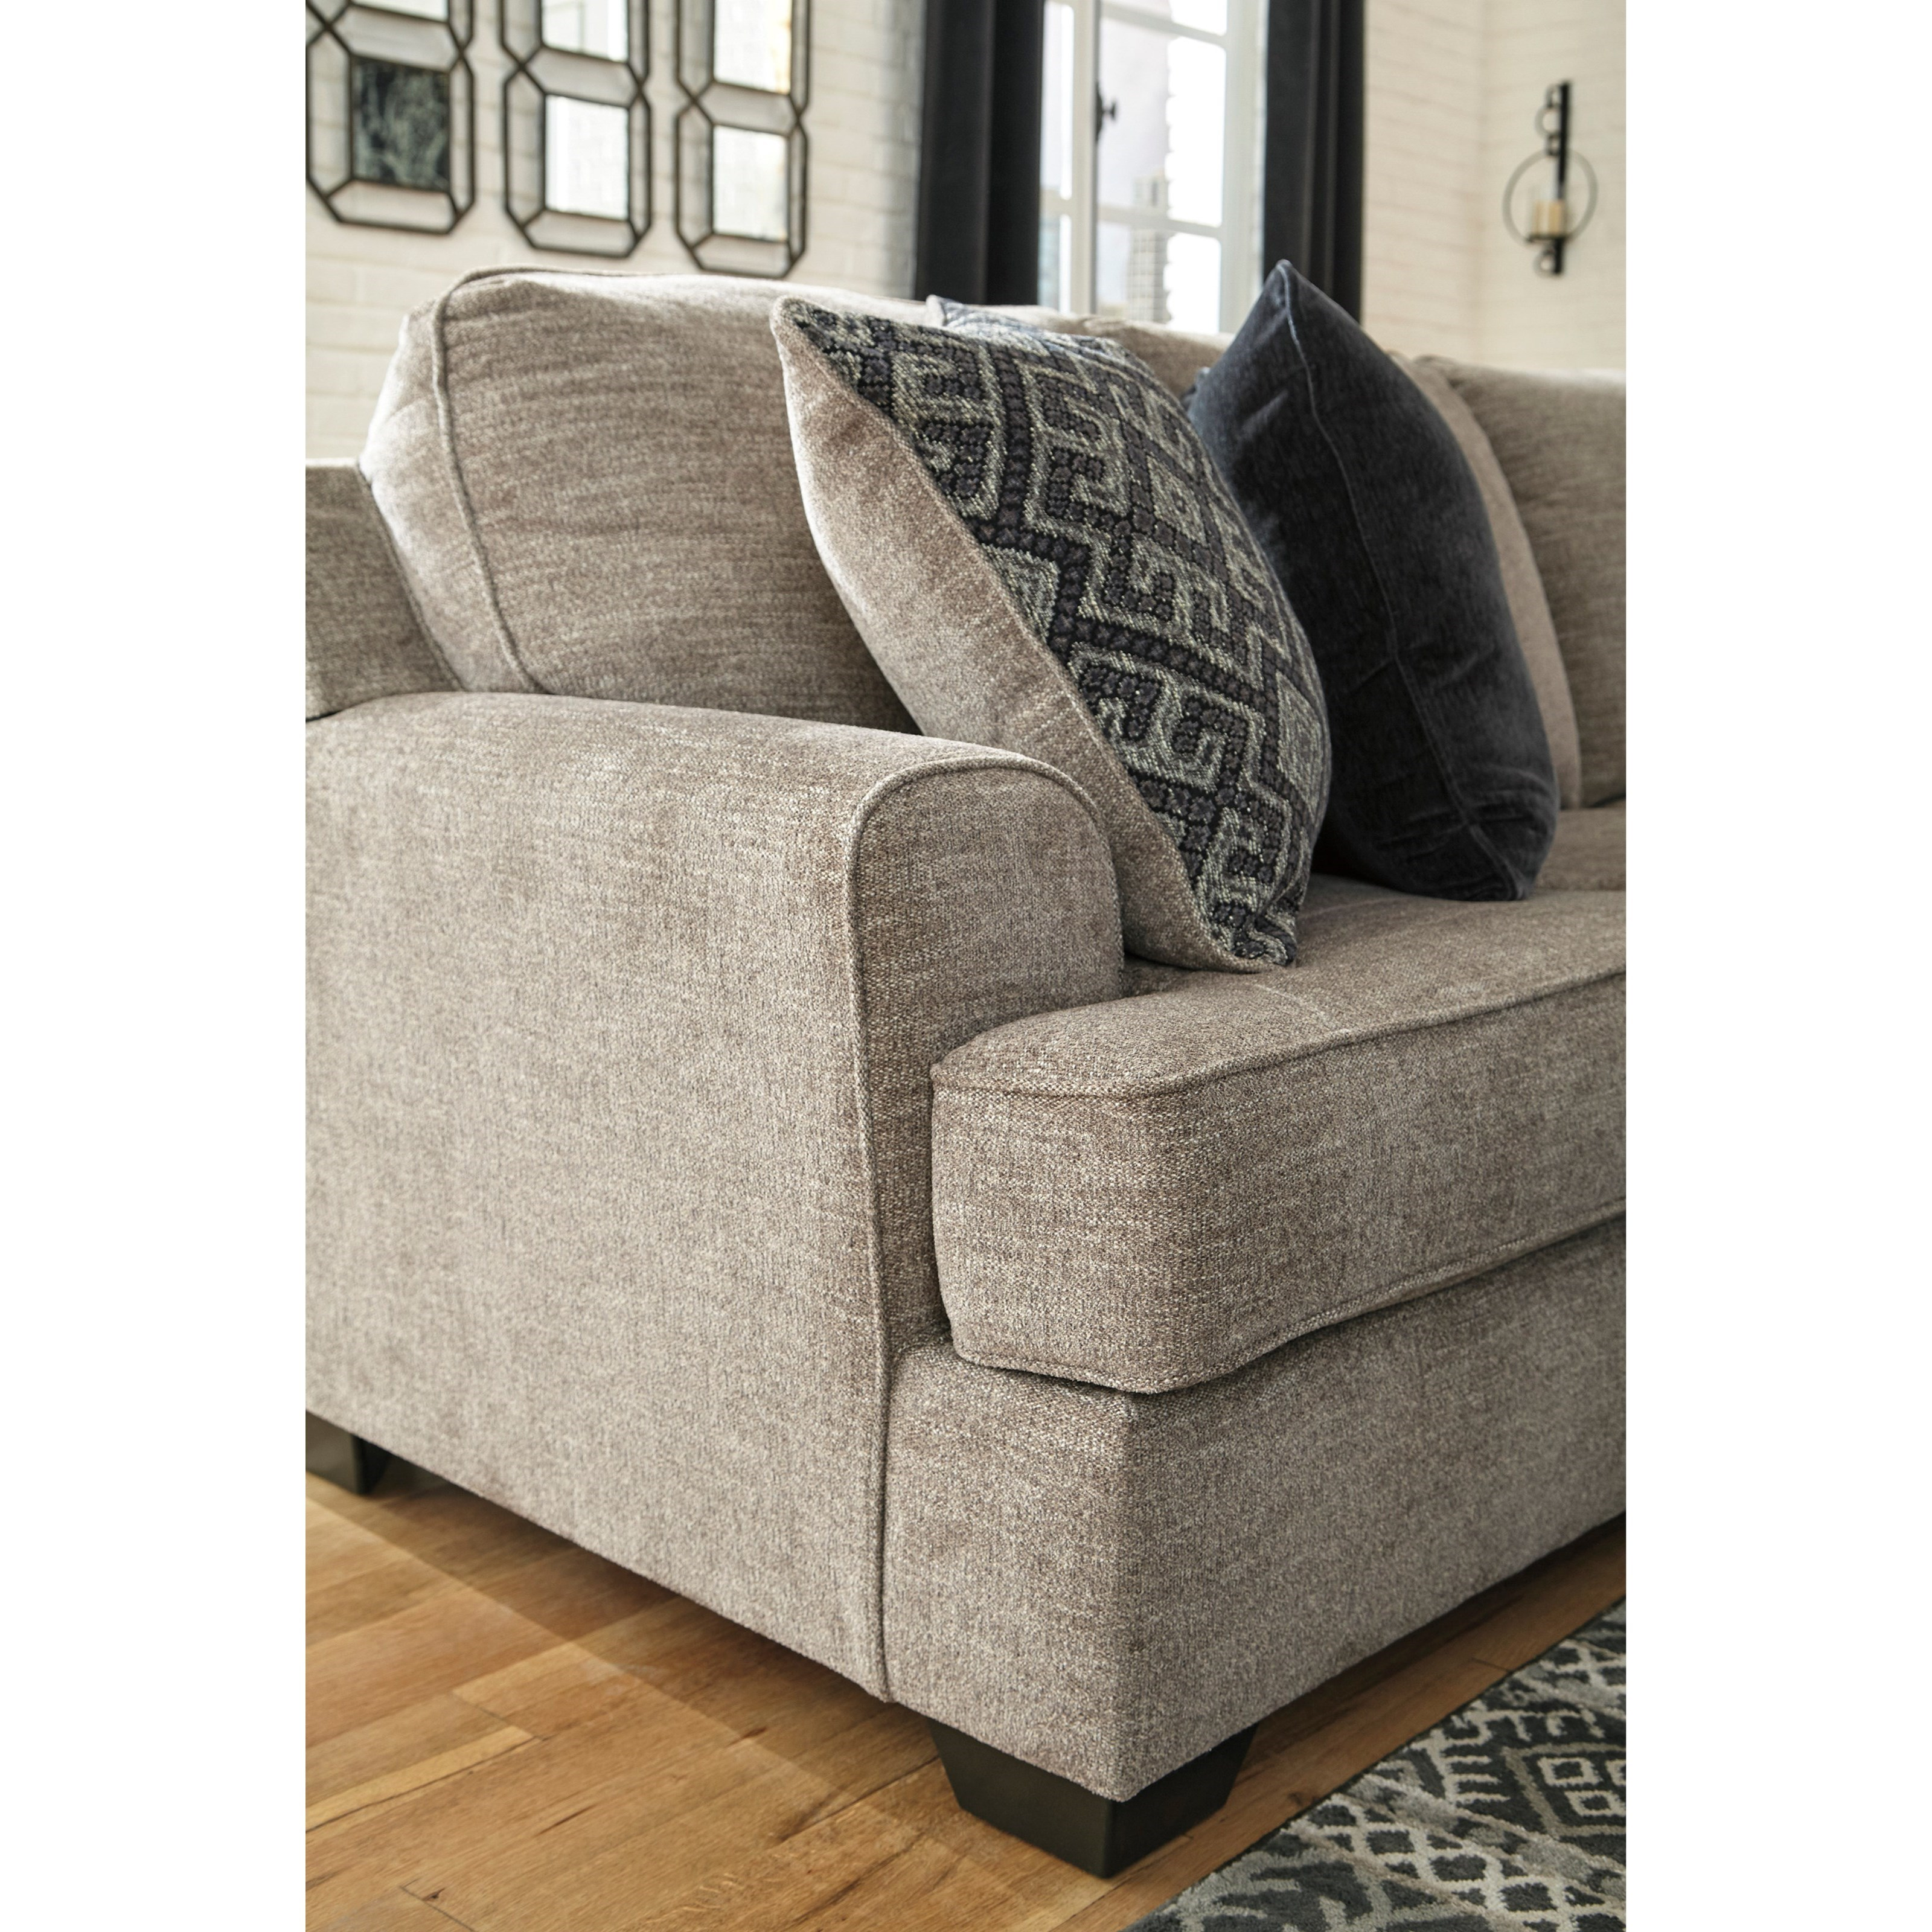 Signature Furniture By Ashley: Signature Design By Ashley Bovarian 3-Piece Sectional With